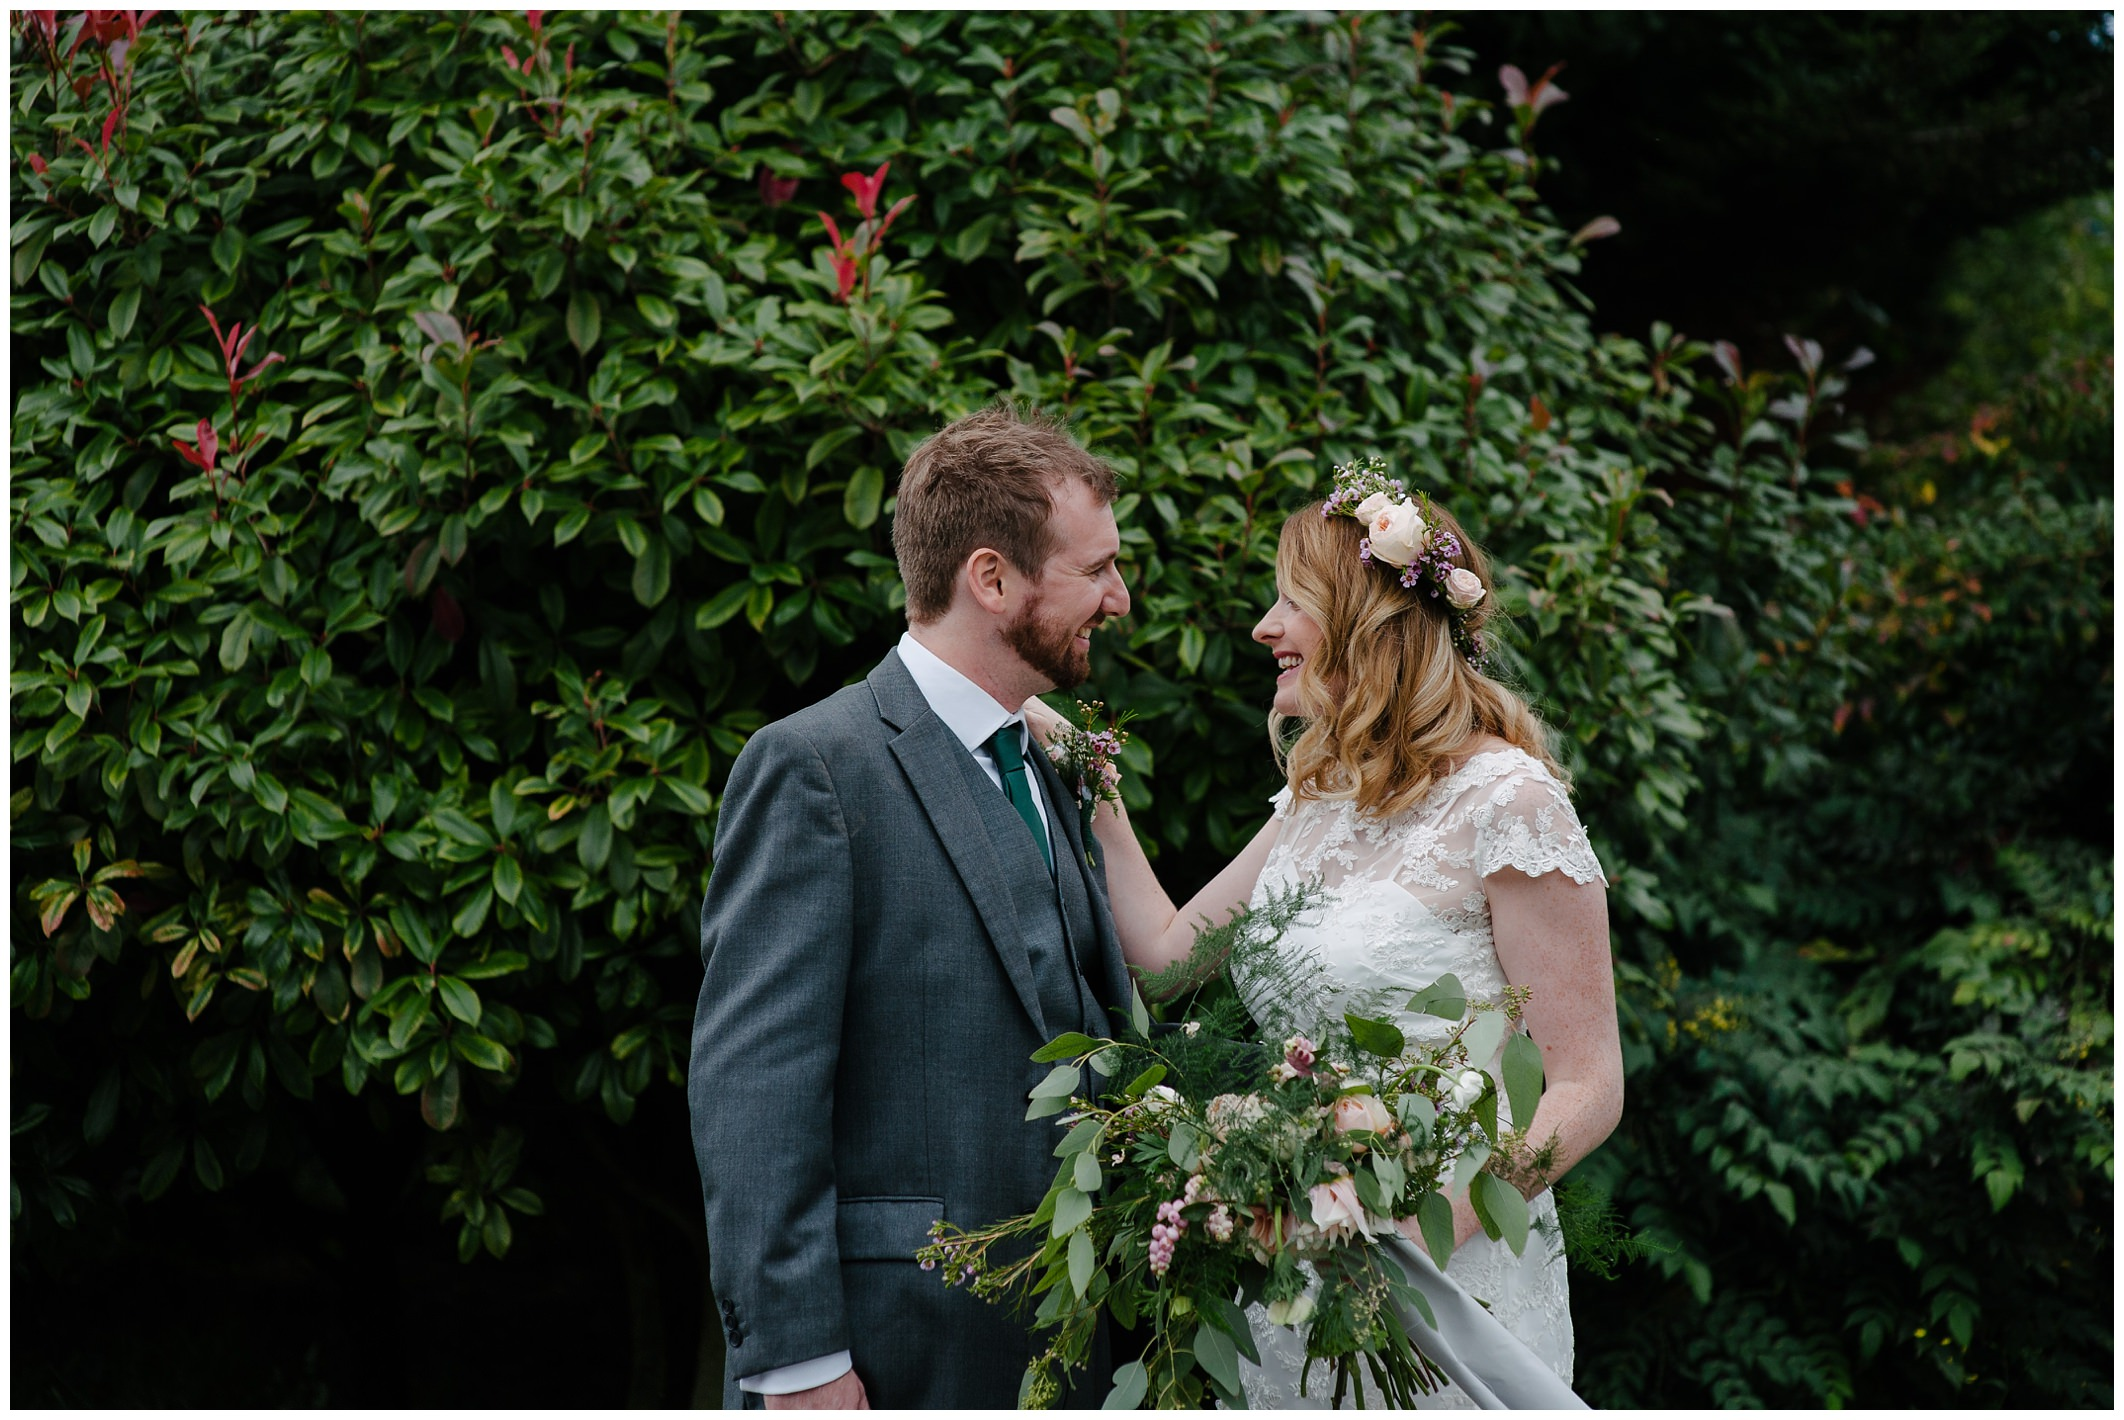 asylum_chapel_peckham_rosendale_wedding_jude_browne_photography_0099.jpg